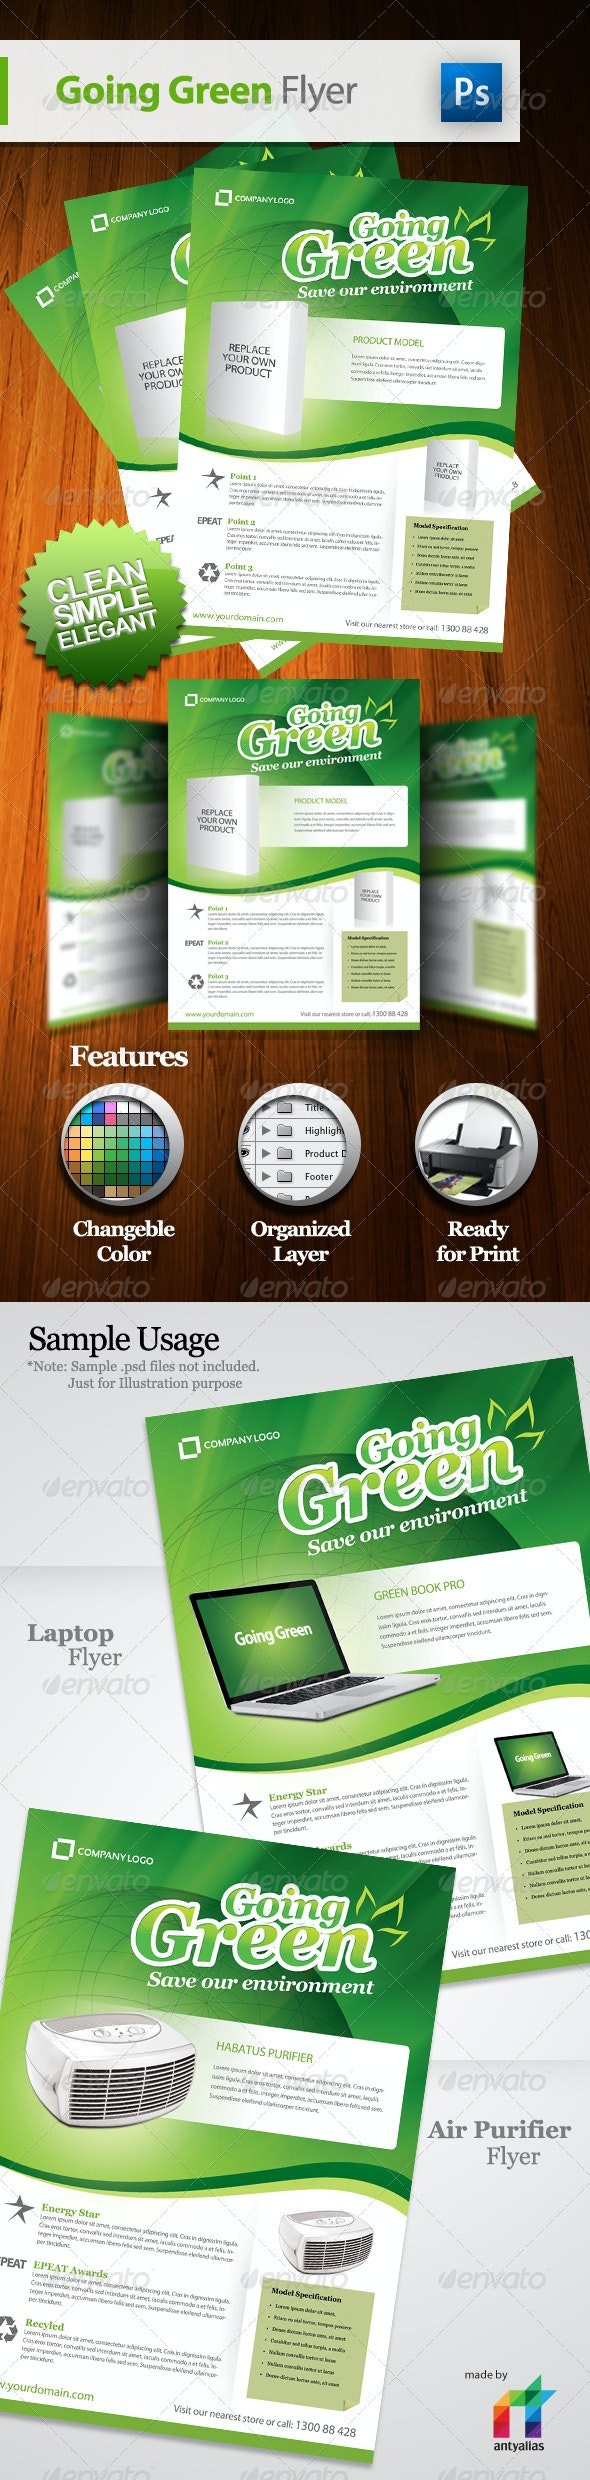 Going Green Product Flyer - Commerce Flyers